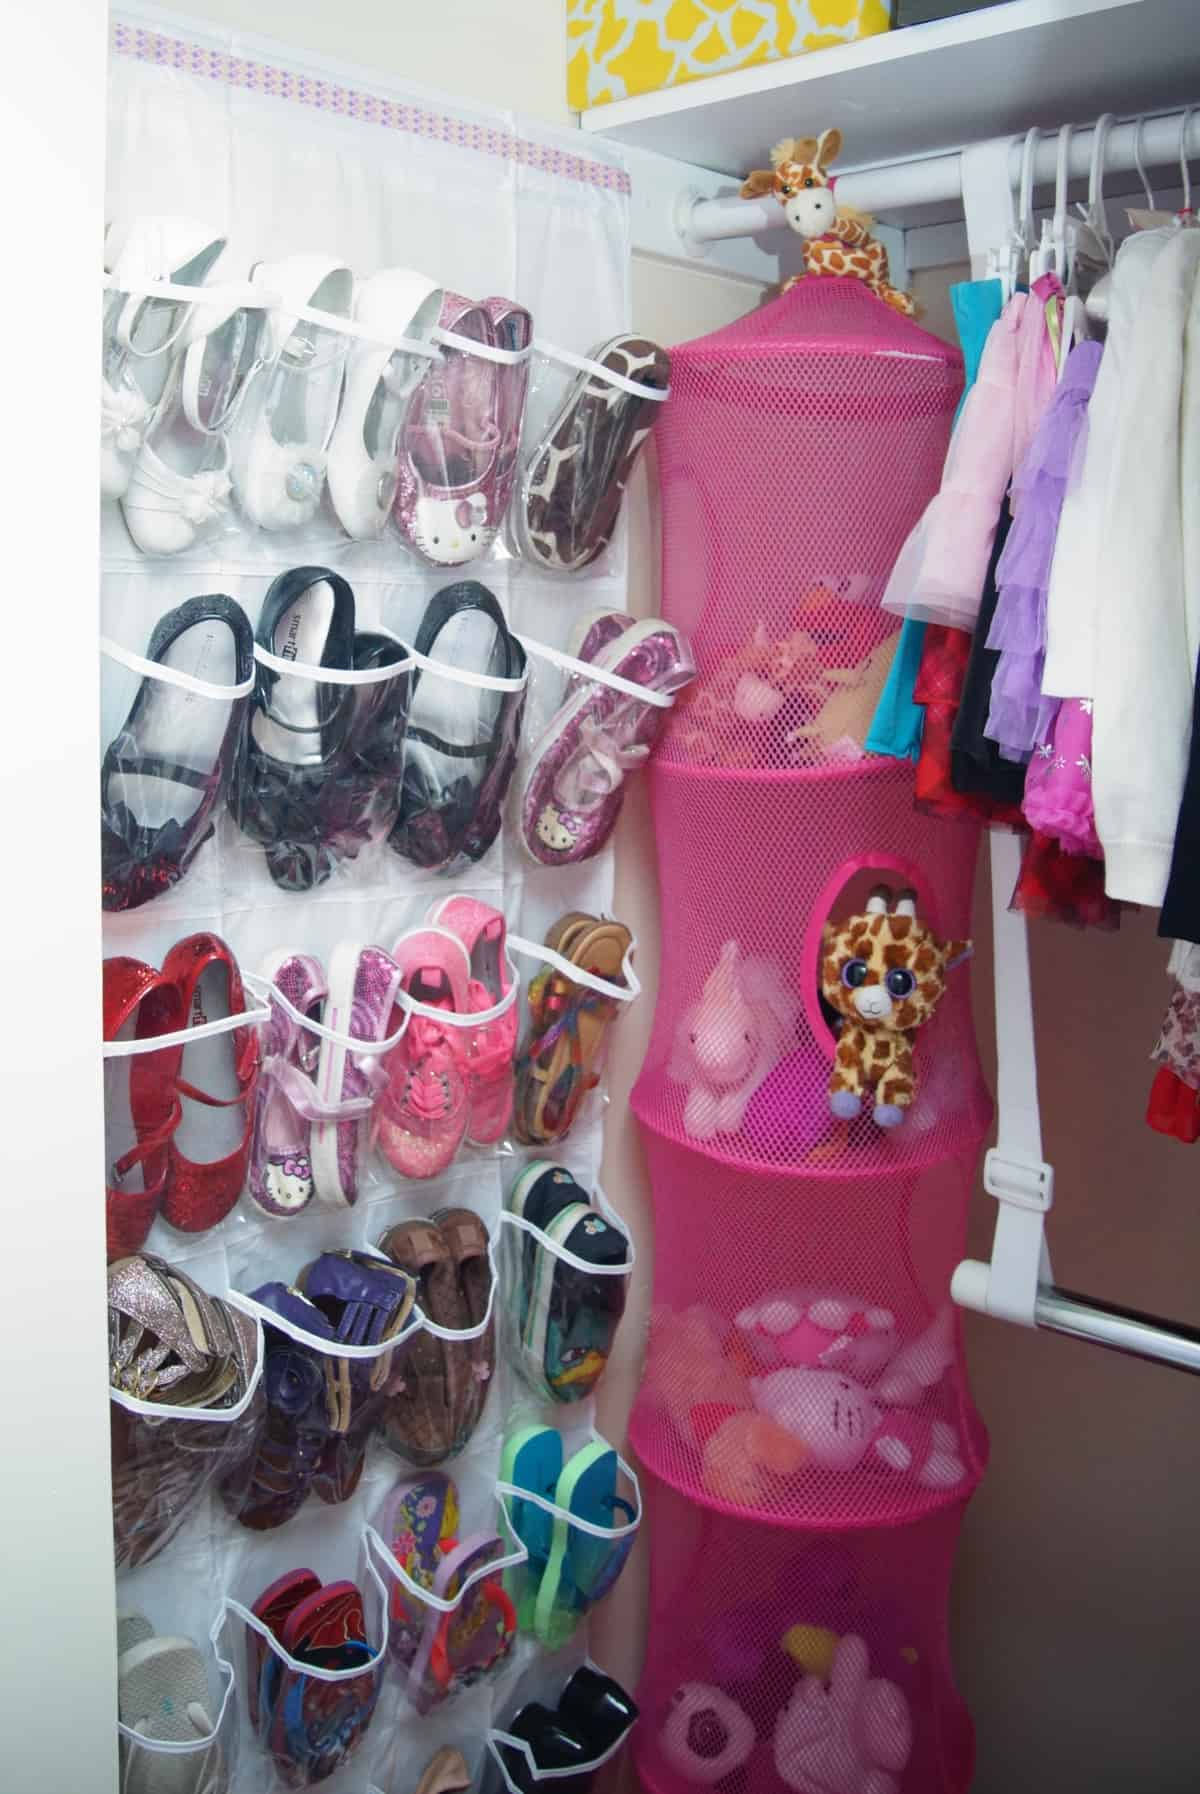 Unique Organizing Stuffed Animals Ideas On Pinterest Best Toy Storage That  Kids Will Love Animal With Storage For Stuffed Animals Pinterest.